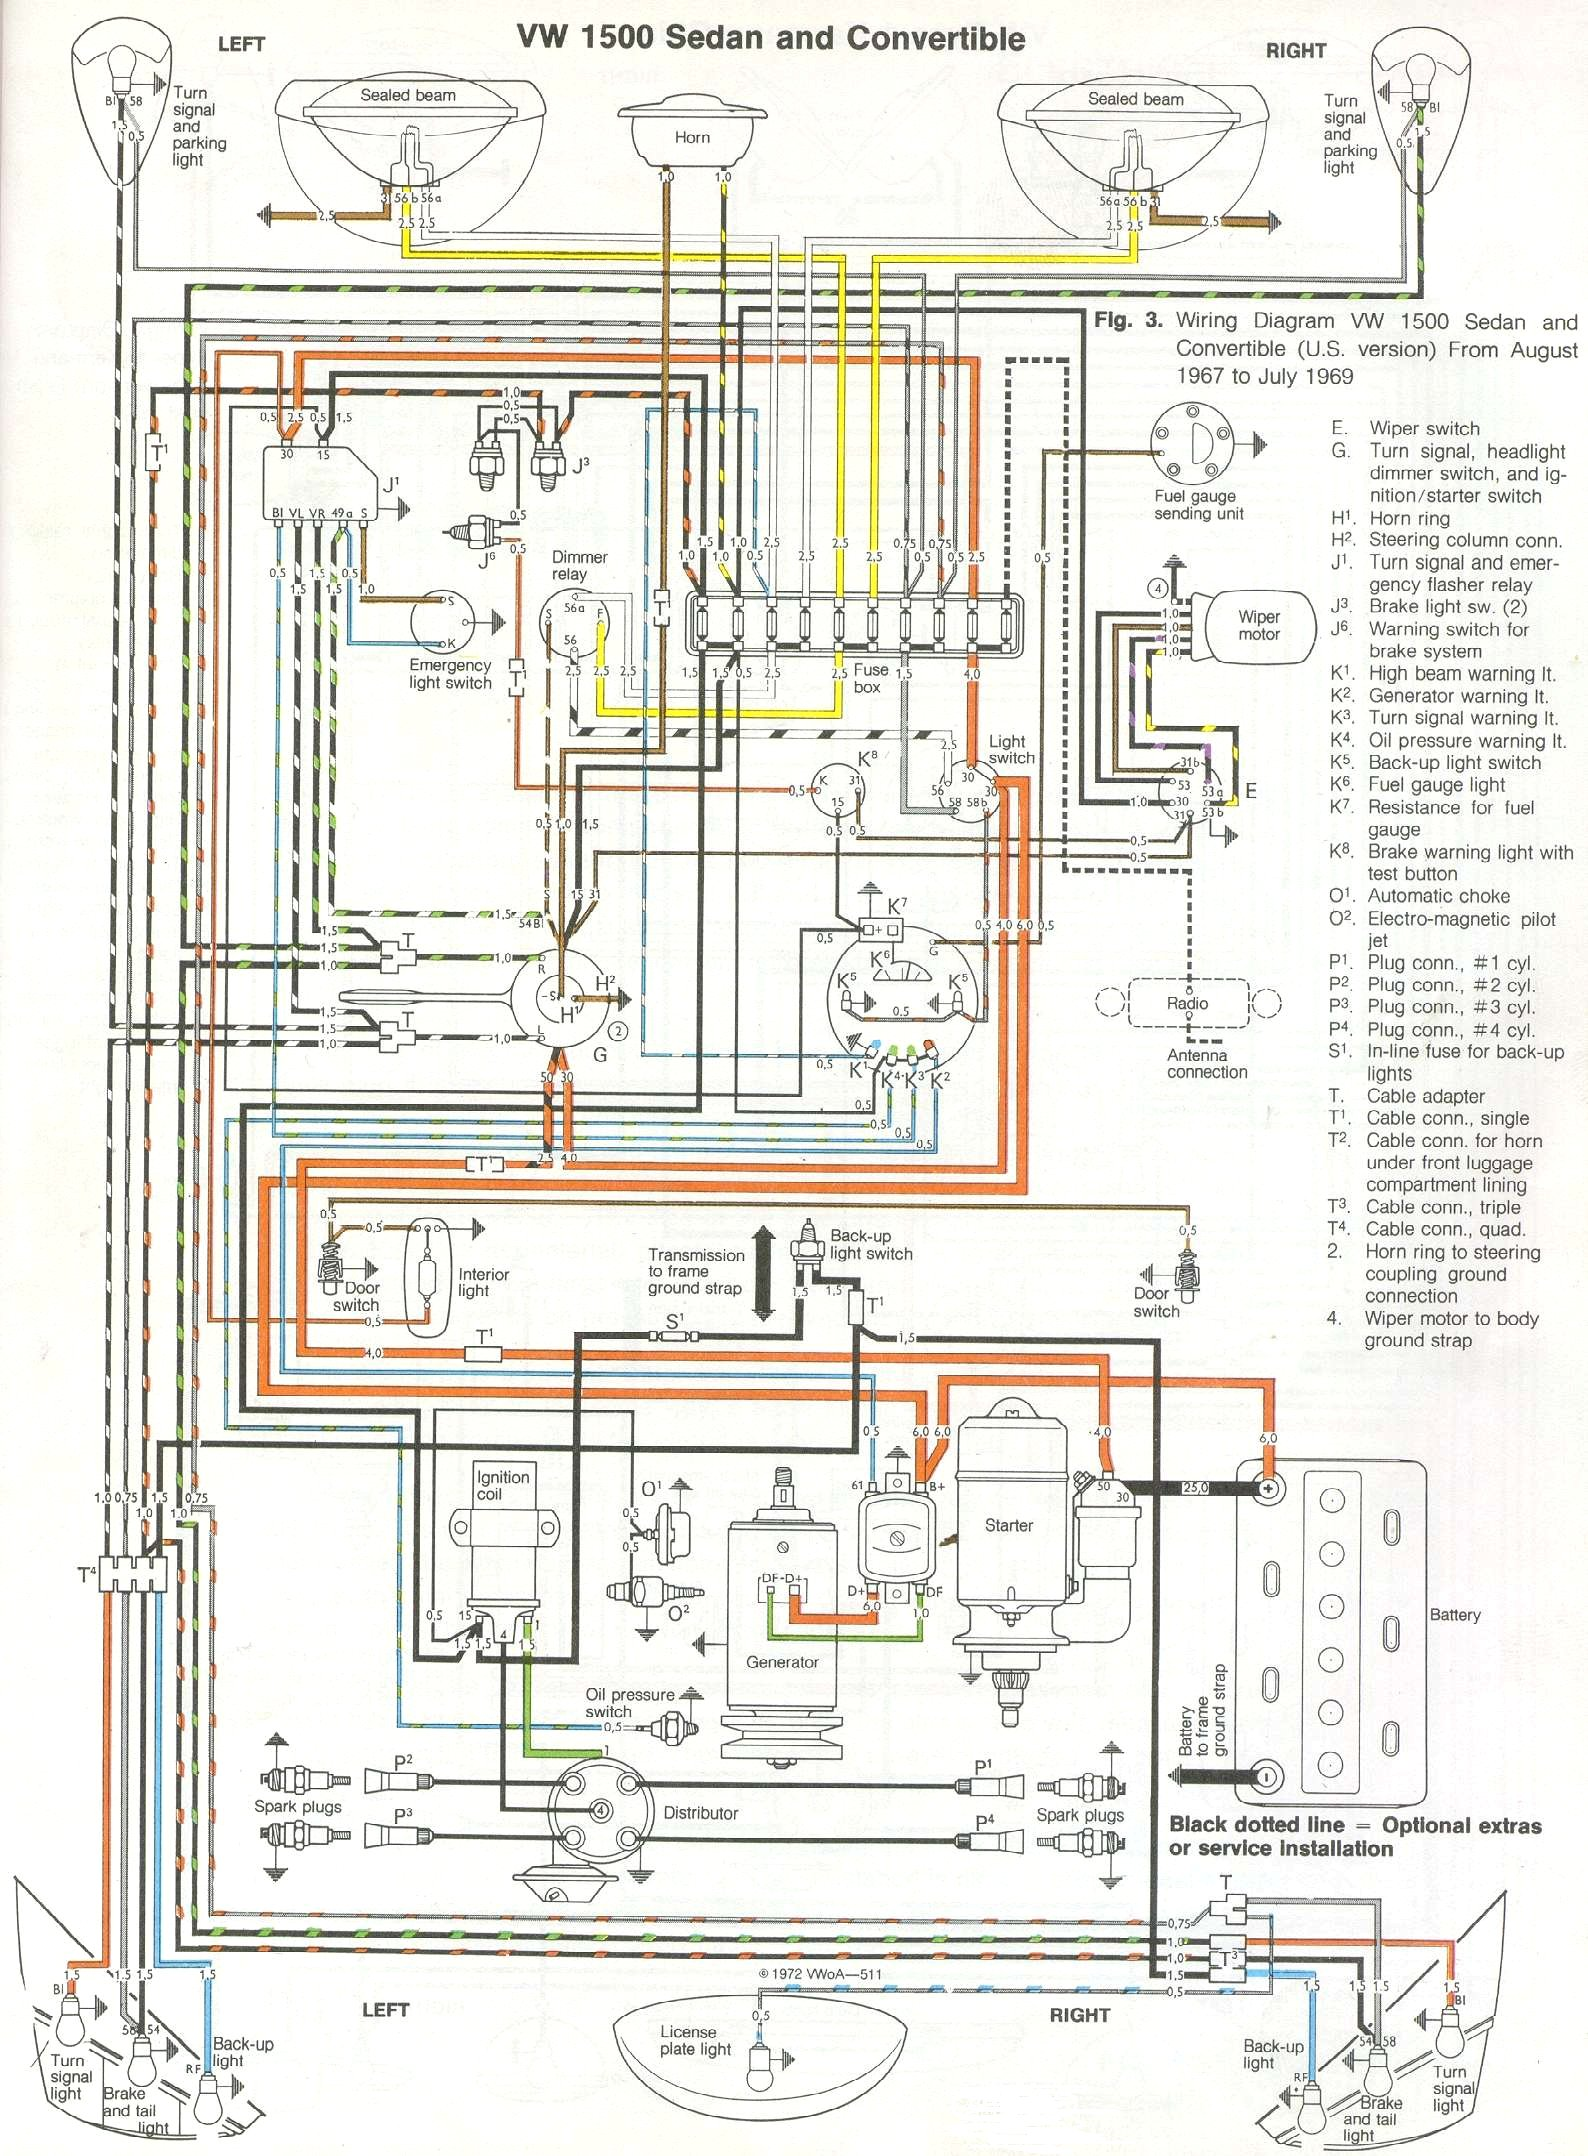 bug_6869 vw wiring harness diagram cj7 wiring harness diagram \u2022 wiring 1971 vw bus wiring diagram at bayanpartner.co